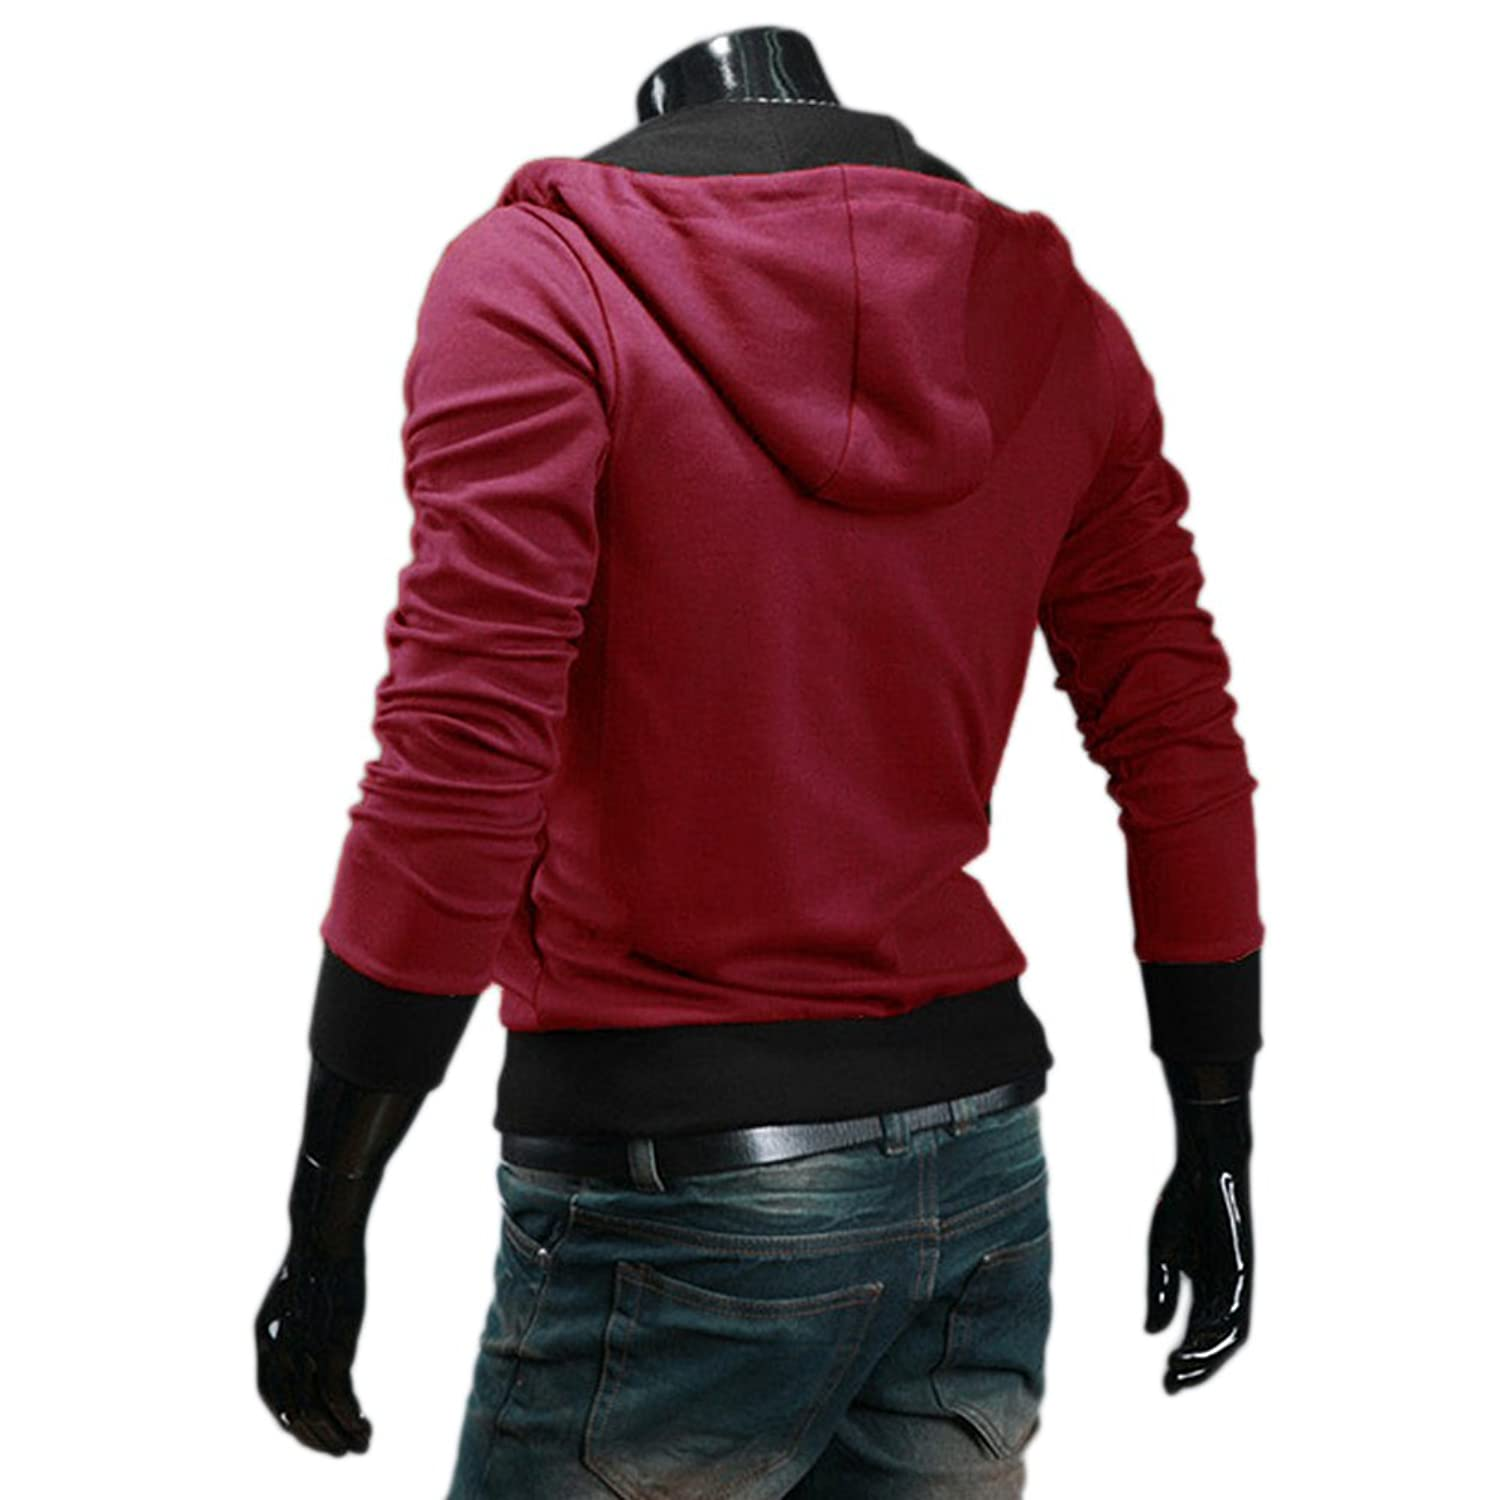 Amazon.com: Aokin Assassins Creed 3 Desmond Miles Cosplay Costume ...